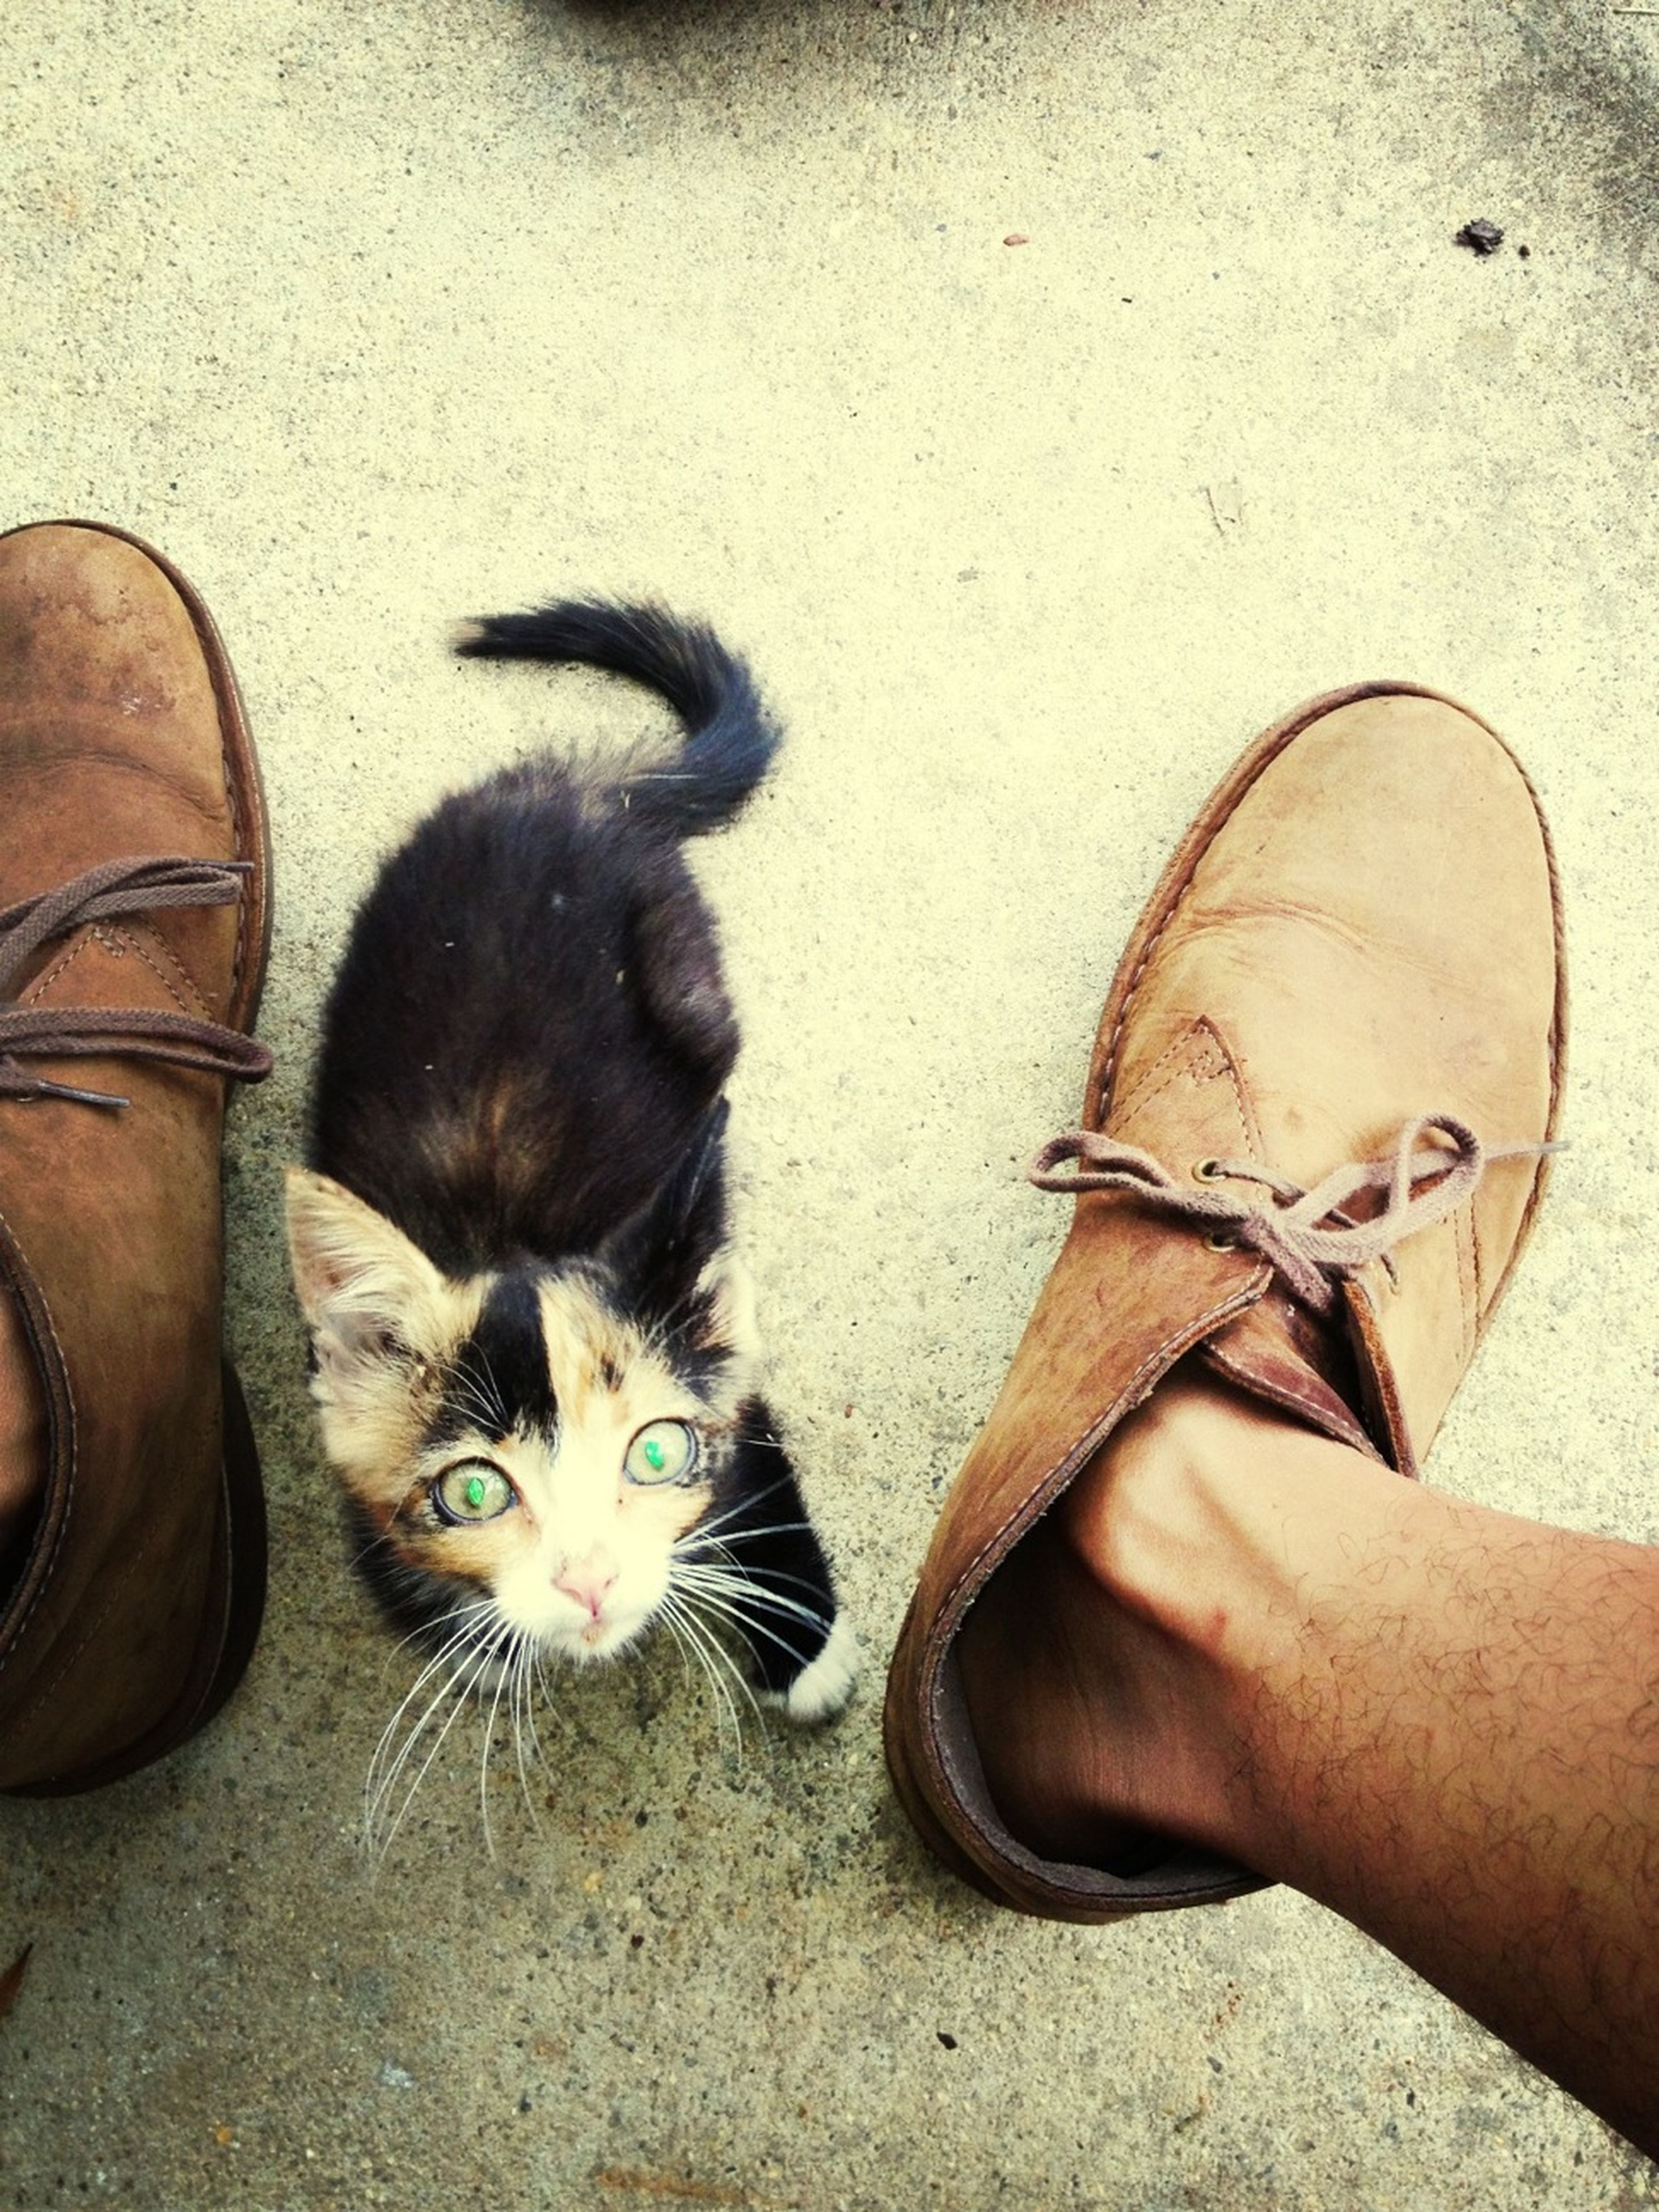 person, personal perspective, lifestyles, low section, part of, high angle view, unrecognizable person, animal themes, leisure activity, pets, street, domestic animals, one animal, shoe, men, holding